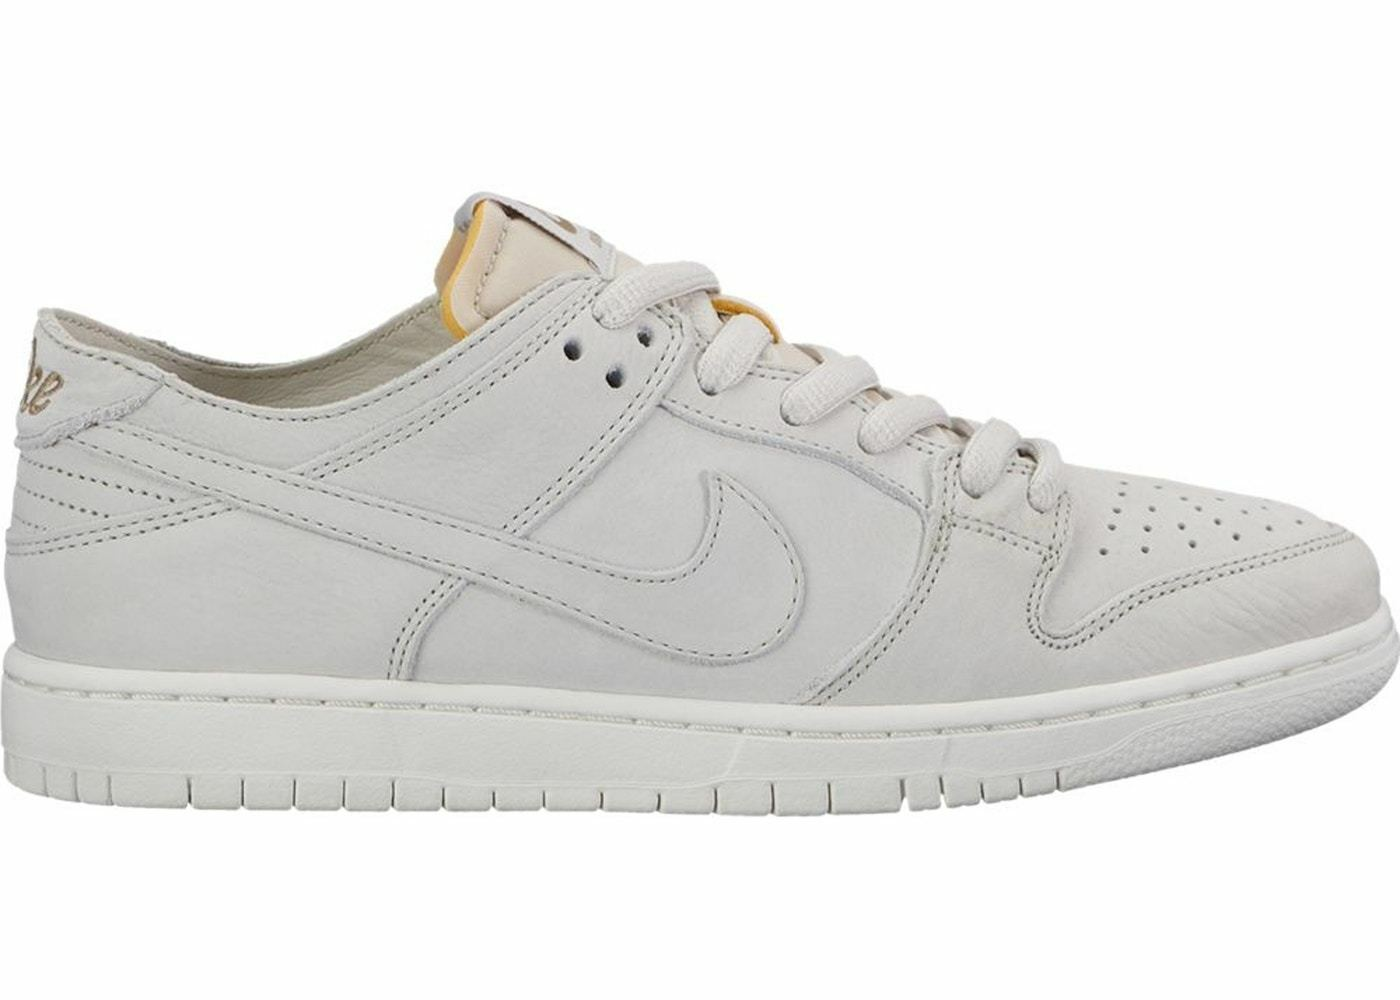 Nike SB ZOOM DUNK faible PRO DECON Light Bone Summit  AA4275-001 (708) homme chaussures